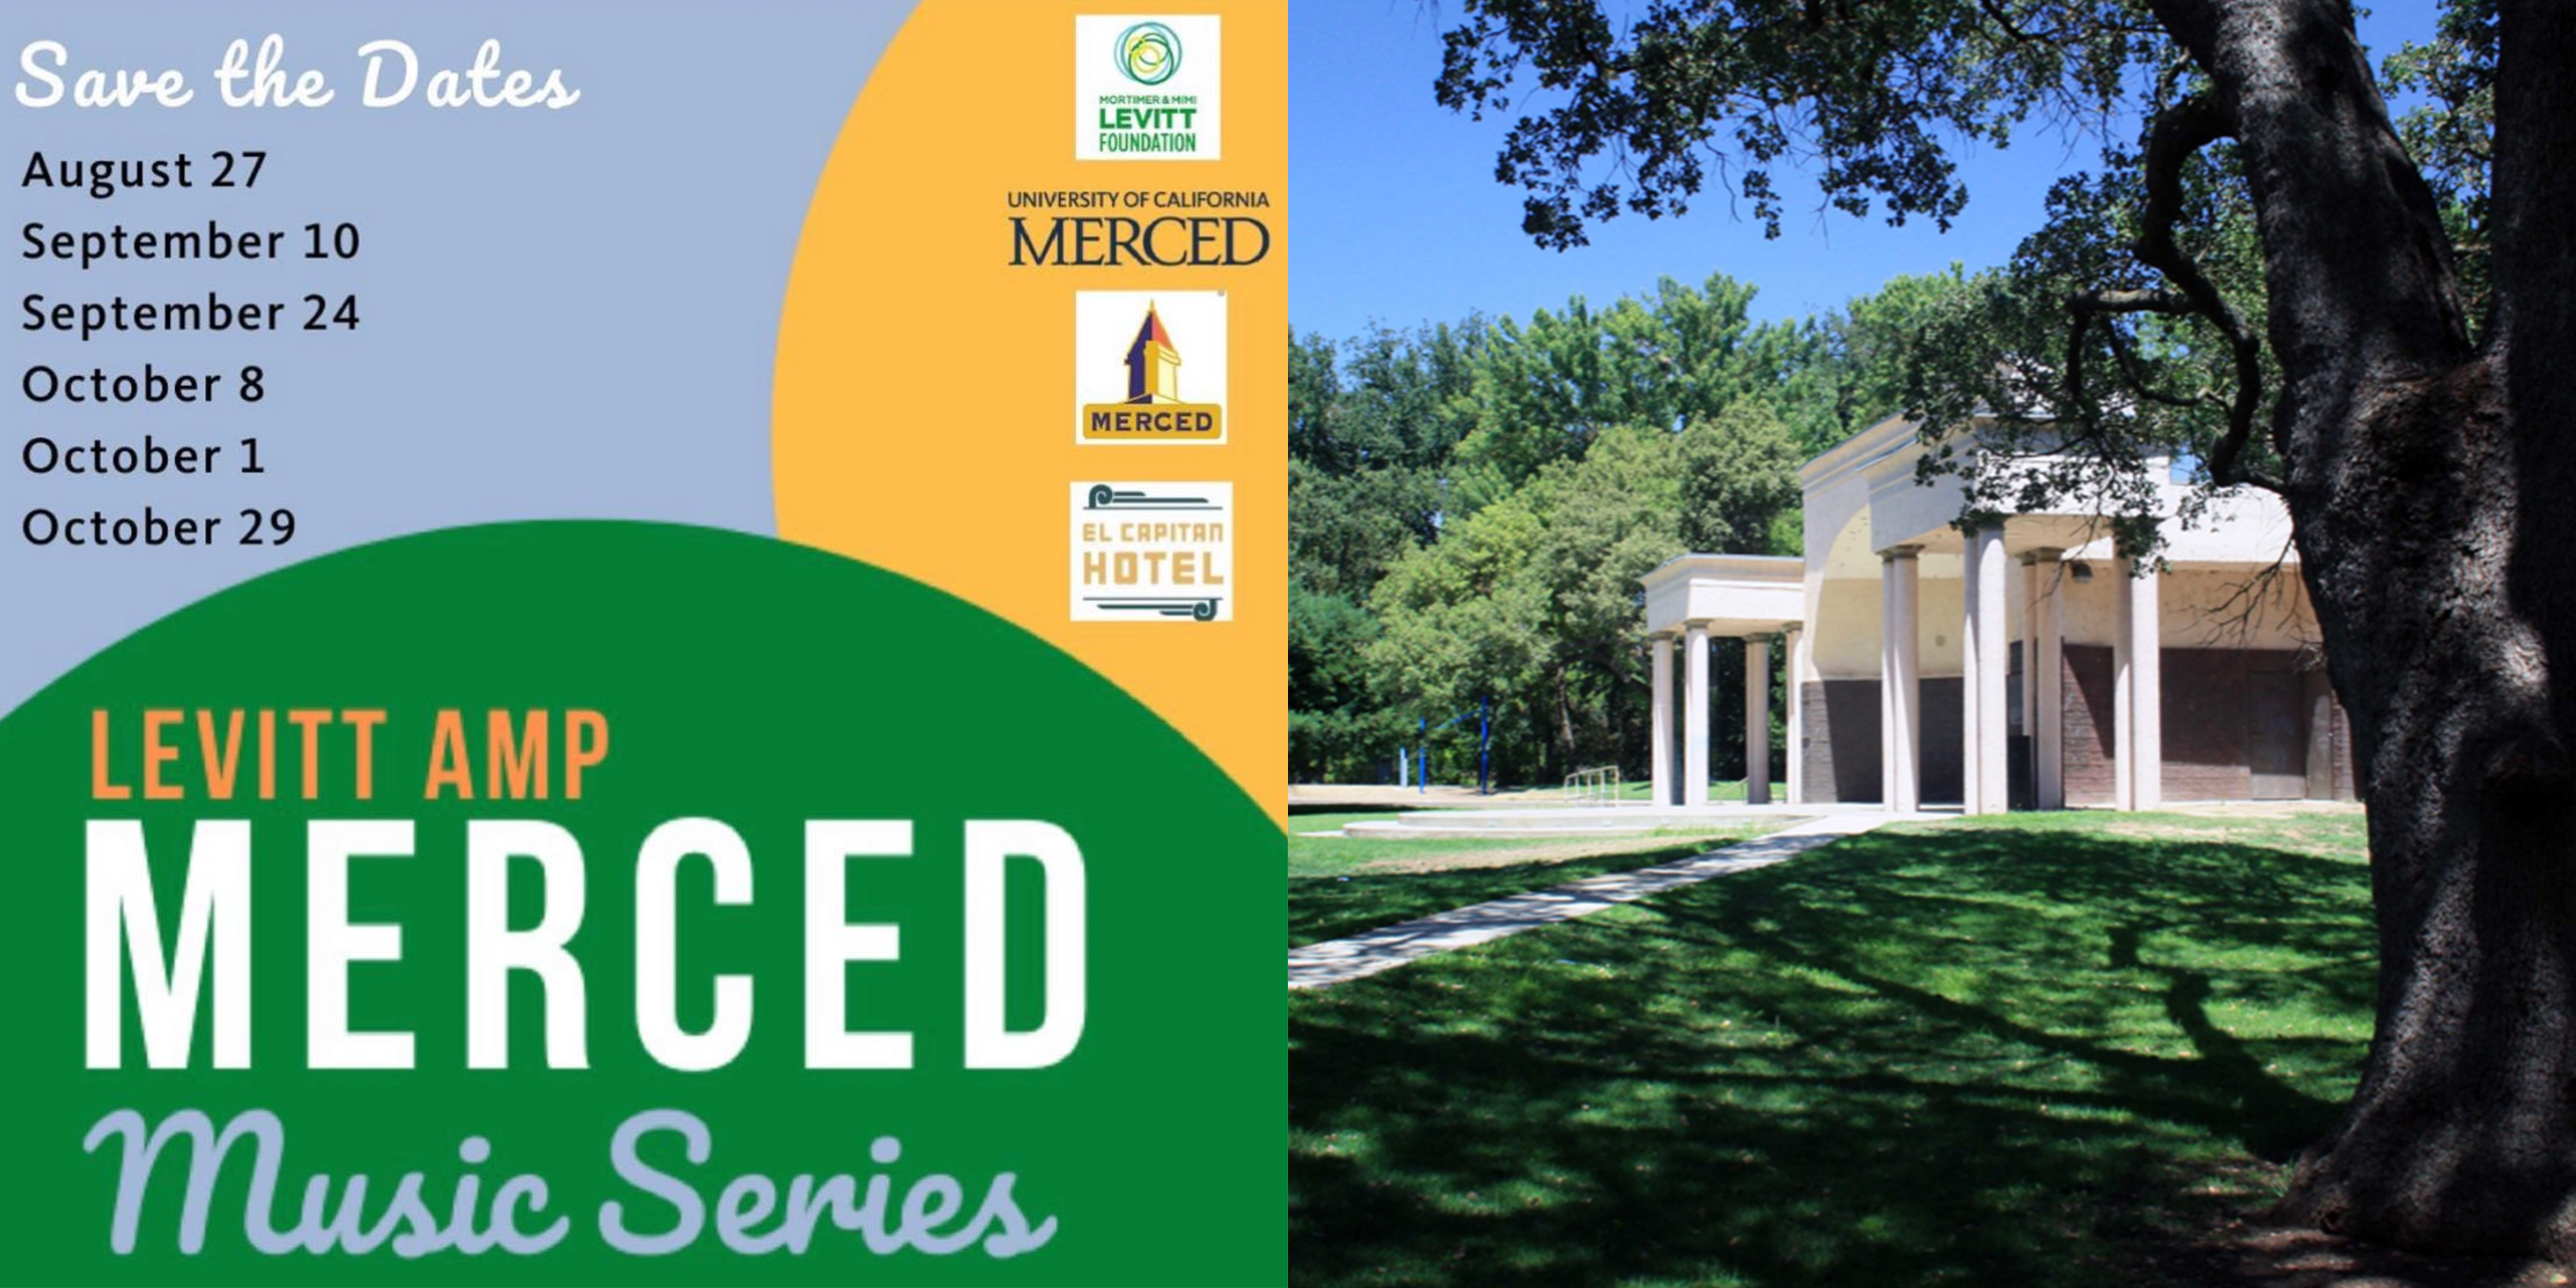 This August Levitt AMP Merced will host its first concert series at Applegate Park's Open Air Stage In Merced.